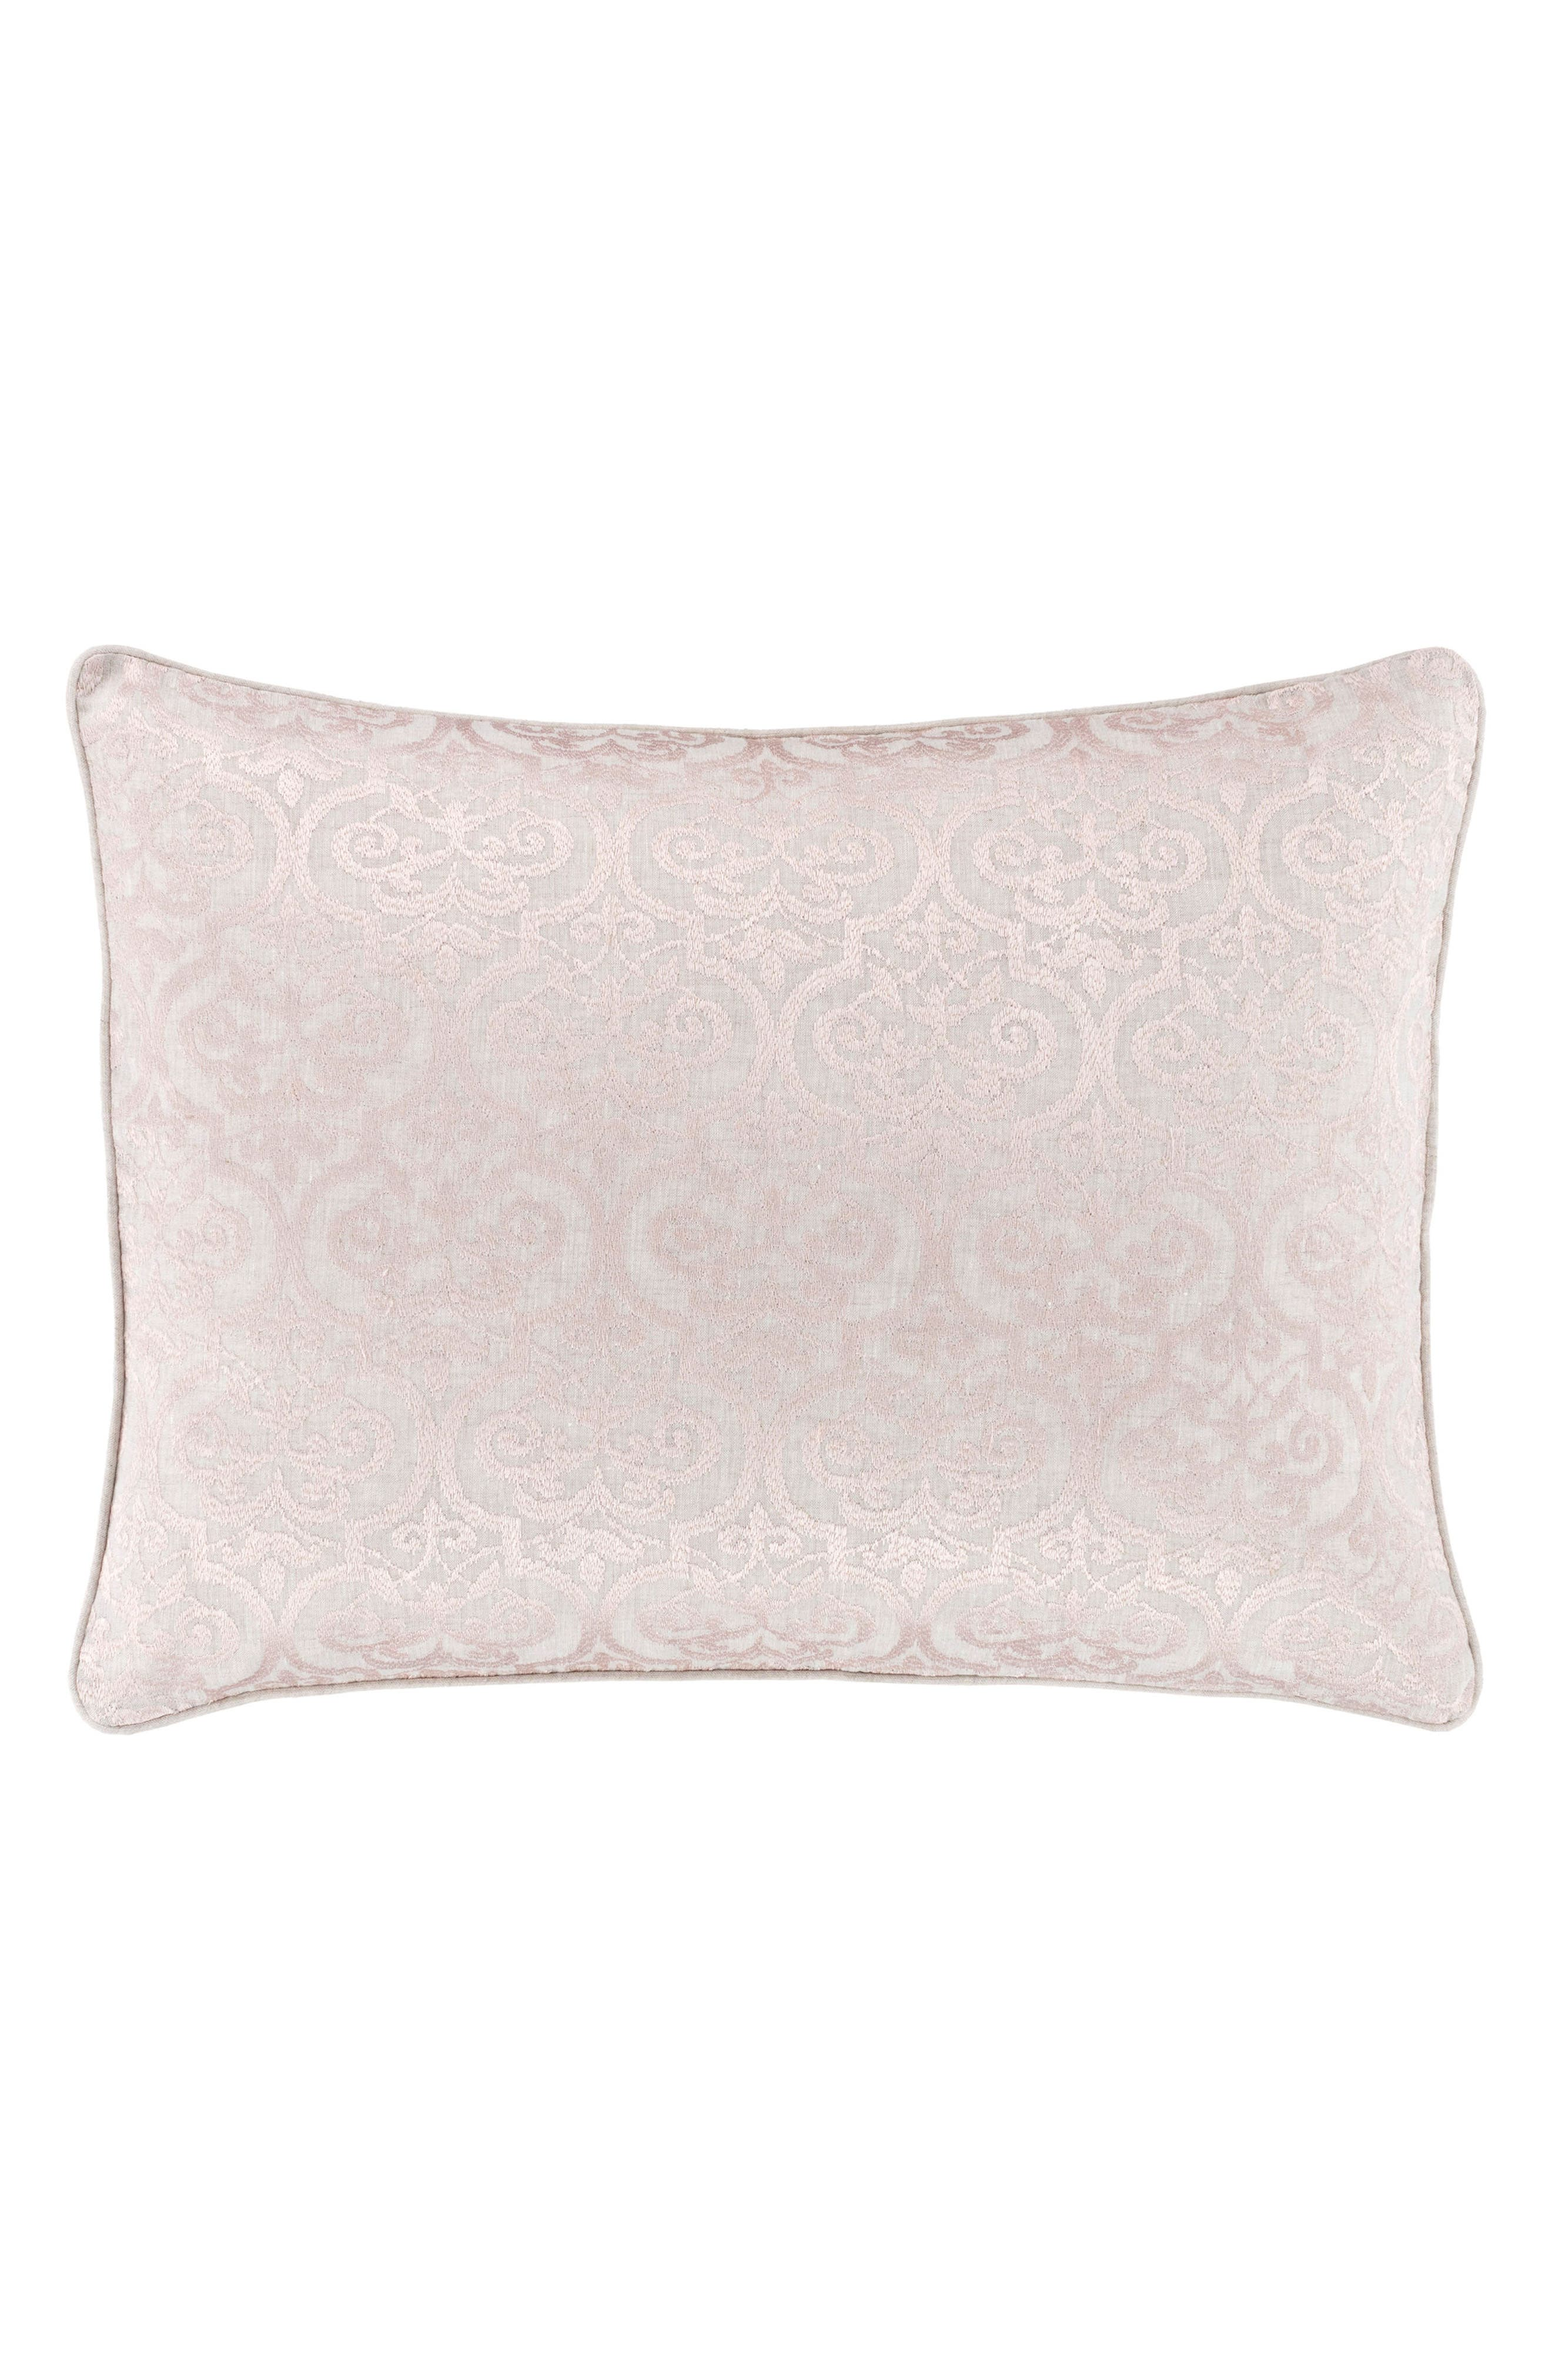 Gwendolyn Embroidered Linen Sham,                             Main thumbnail 1, color,                             Pink